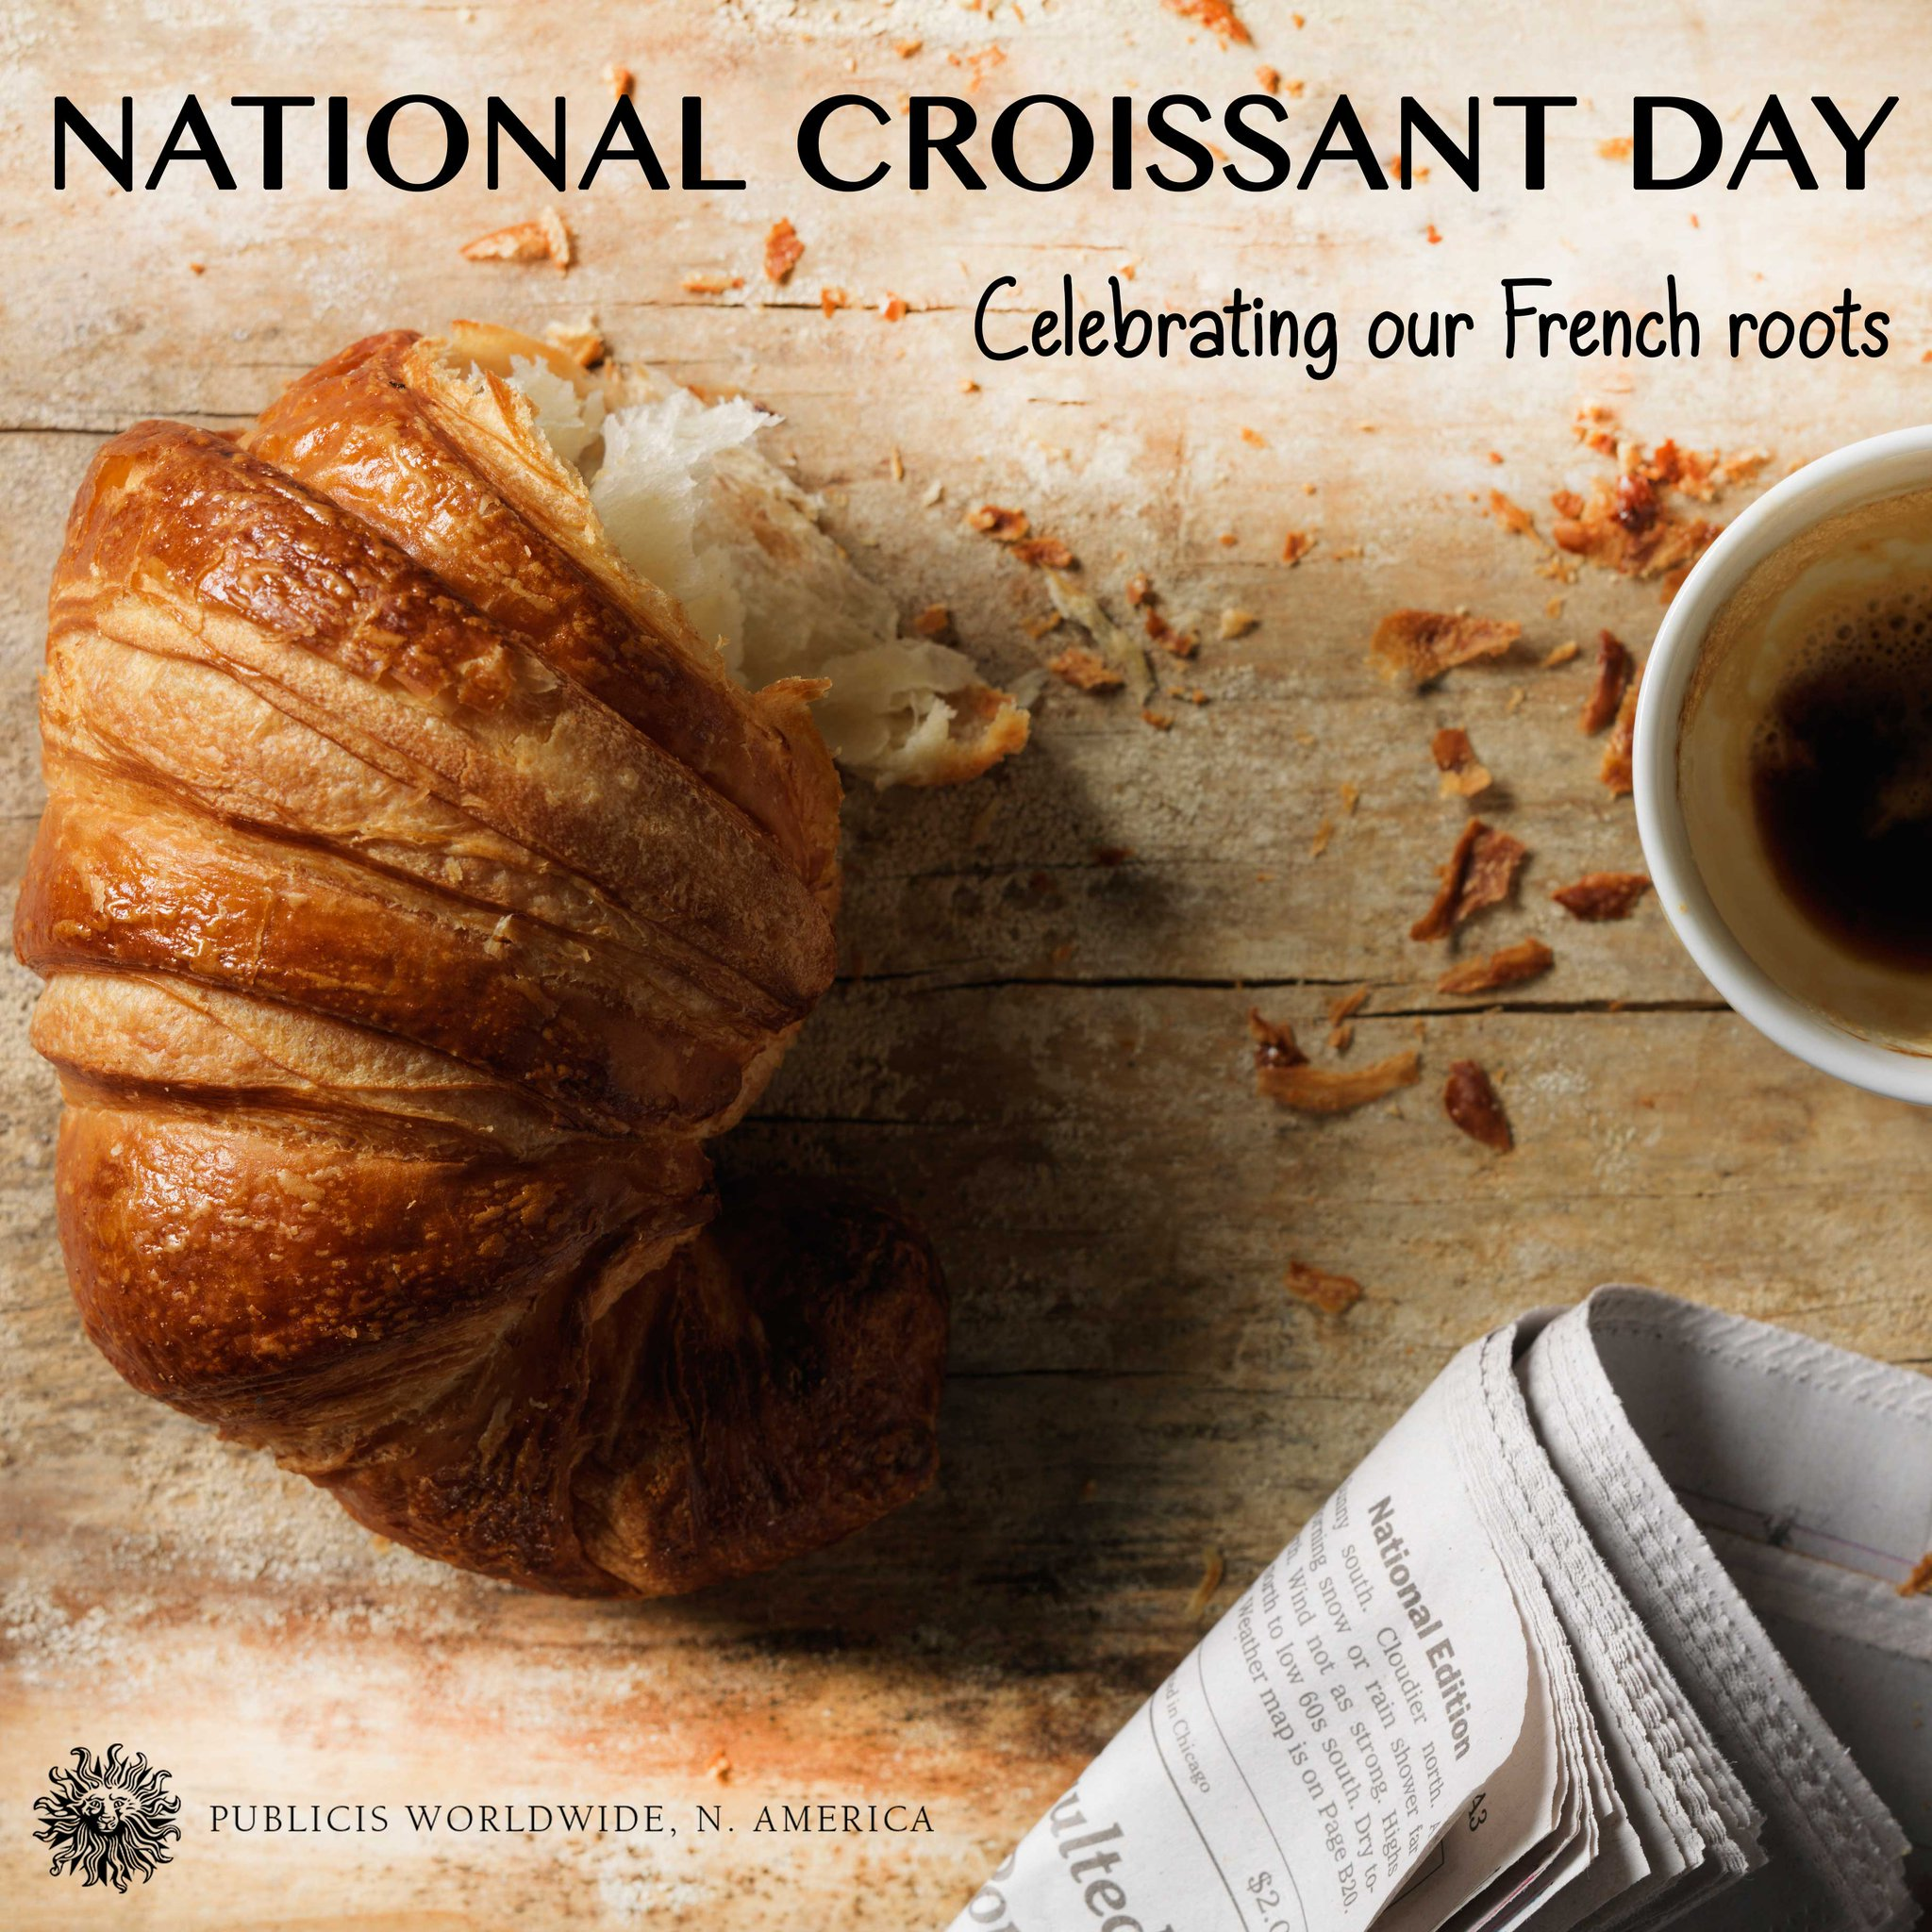 Mais, bien sûr! We're French after all, so we're celebrating #NationalCroissantDay and all its buttery goodness! http://t.co/0X4yBGjhGr